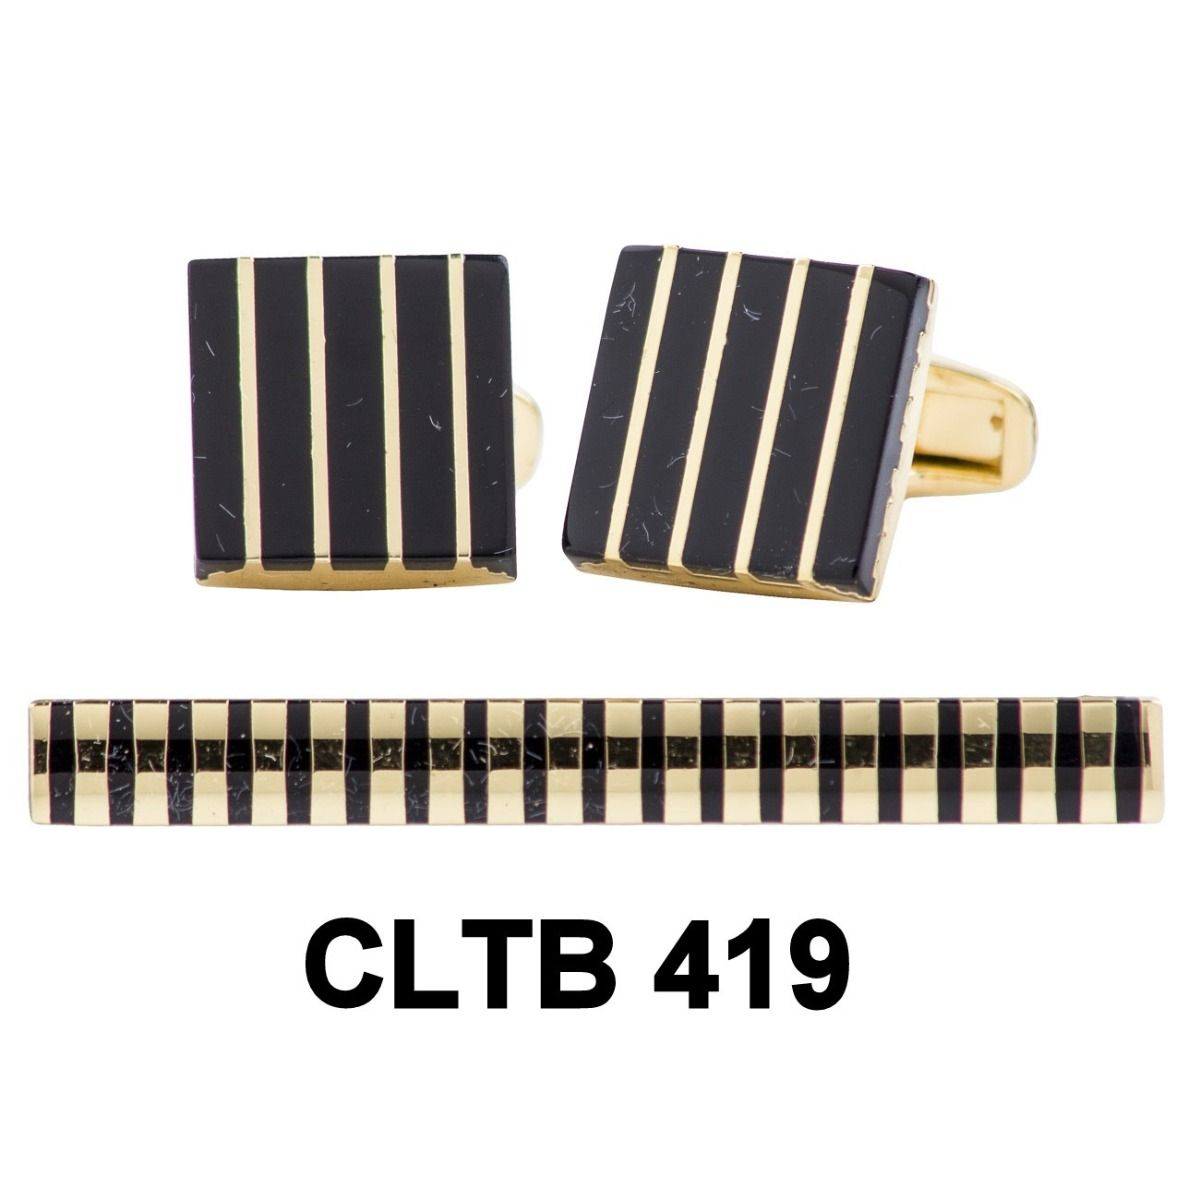 CCO Fashion Cuff Link Set in Gold - Assorted Styles